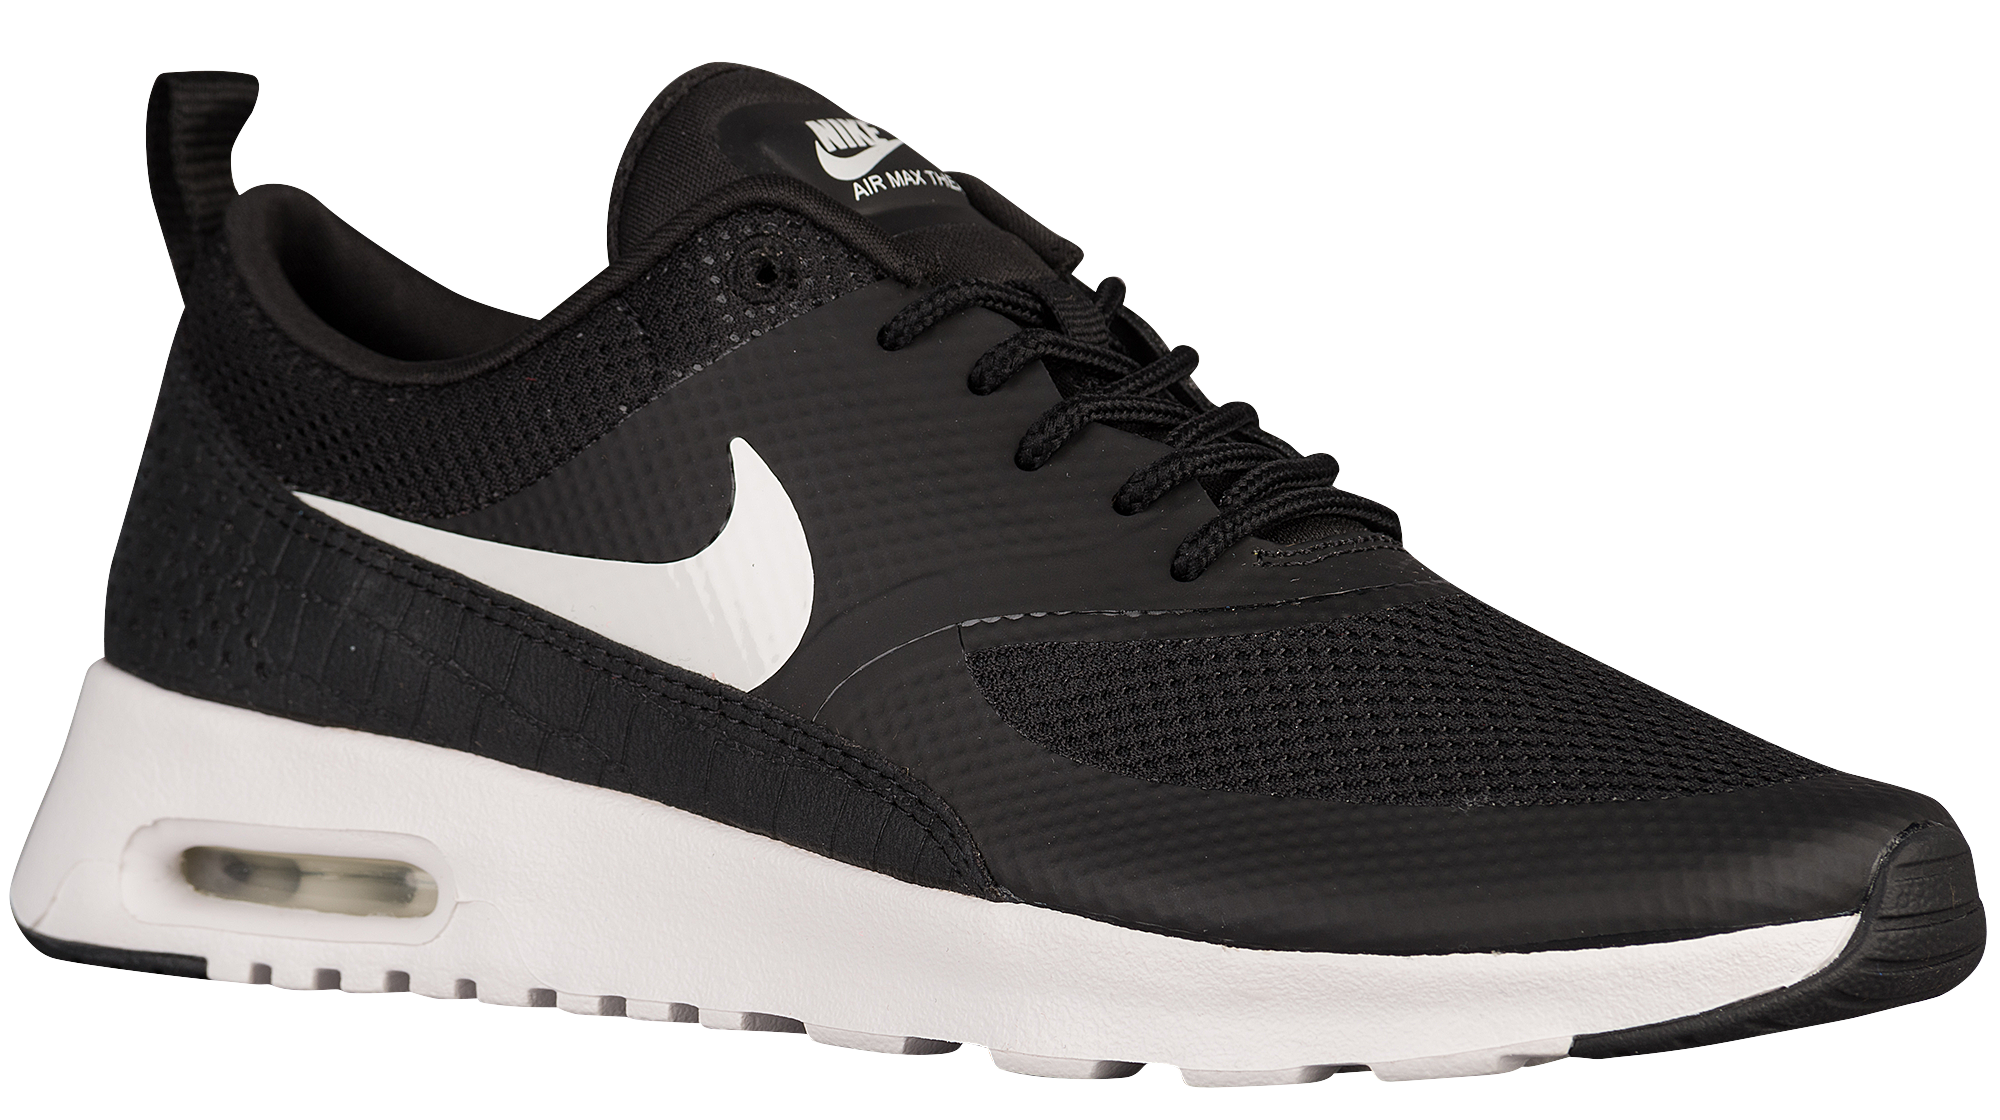 online retailer 989d6 05f64 Wmns Nike Air Max Thea Print Black Anthracite Coral